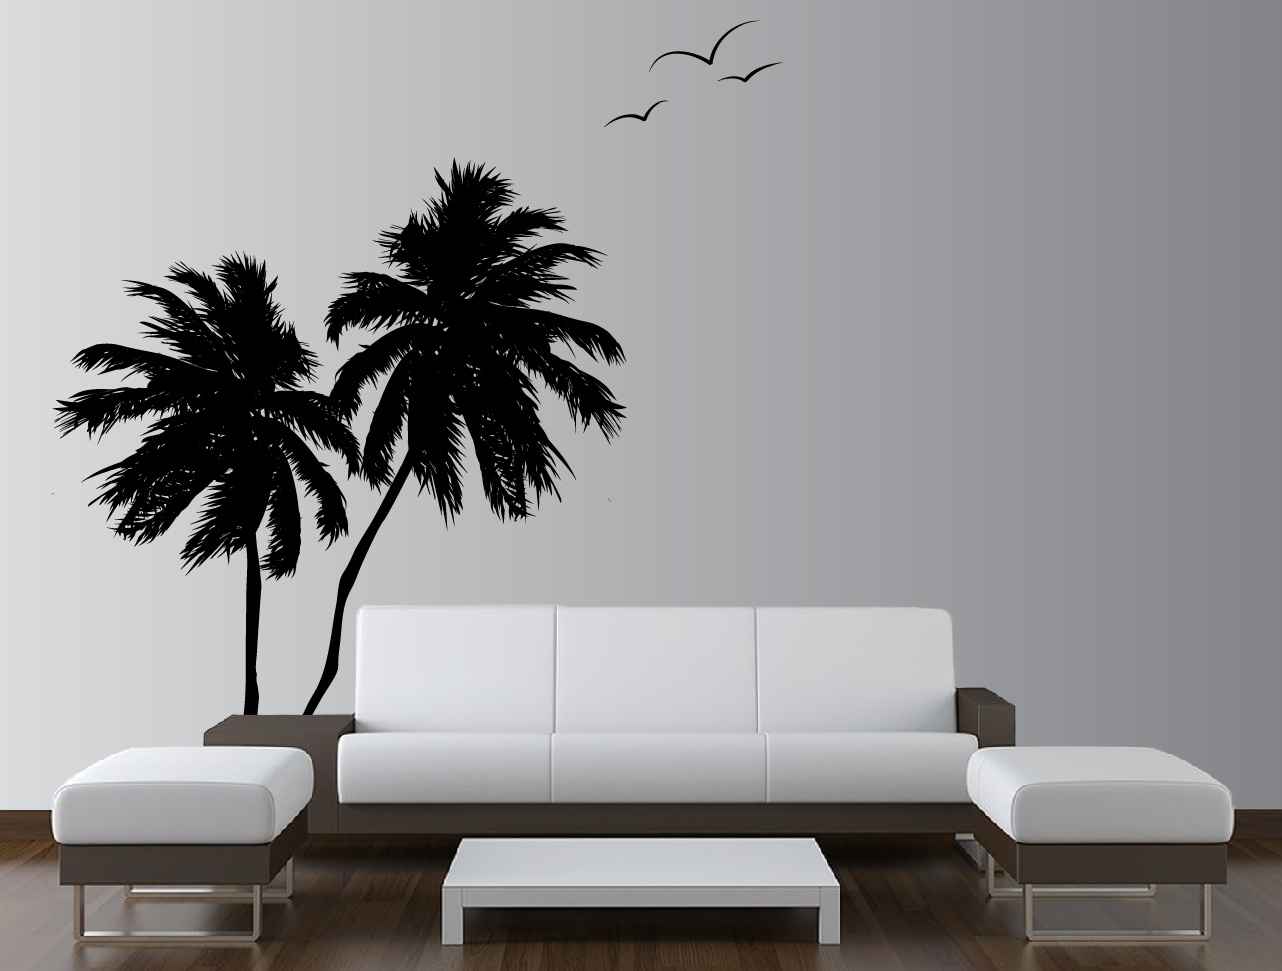 Palm coconut tree wall decal with seagull birds 2 trees 1133 palm trees vinyl decal 1133g amipublicfo Choice Image